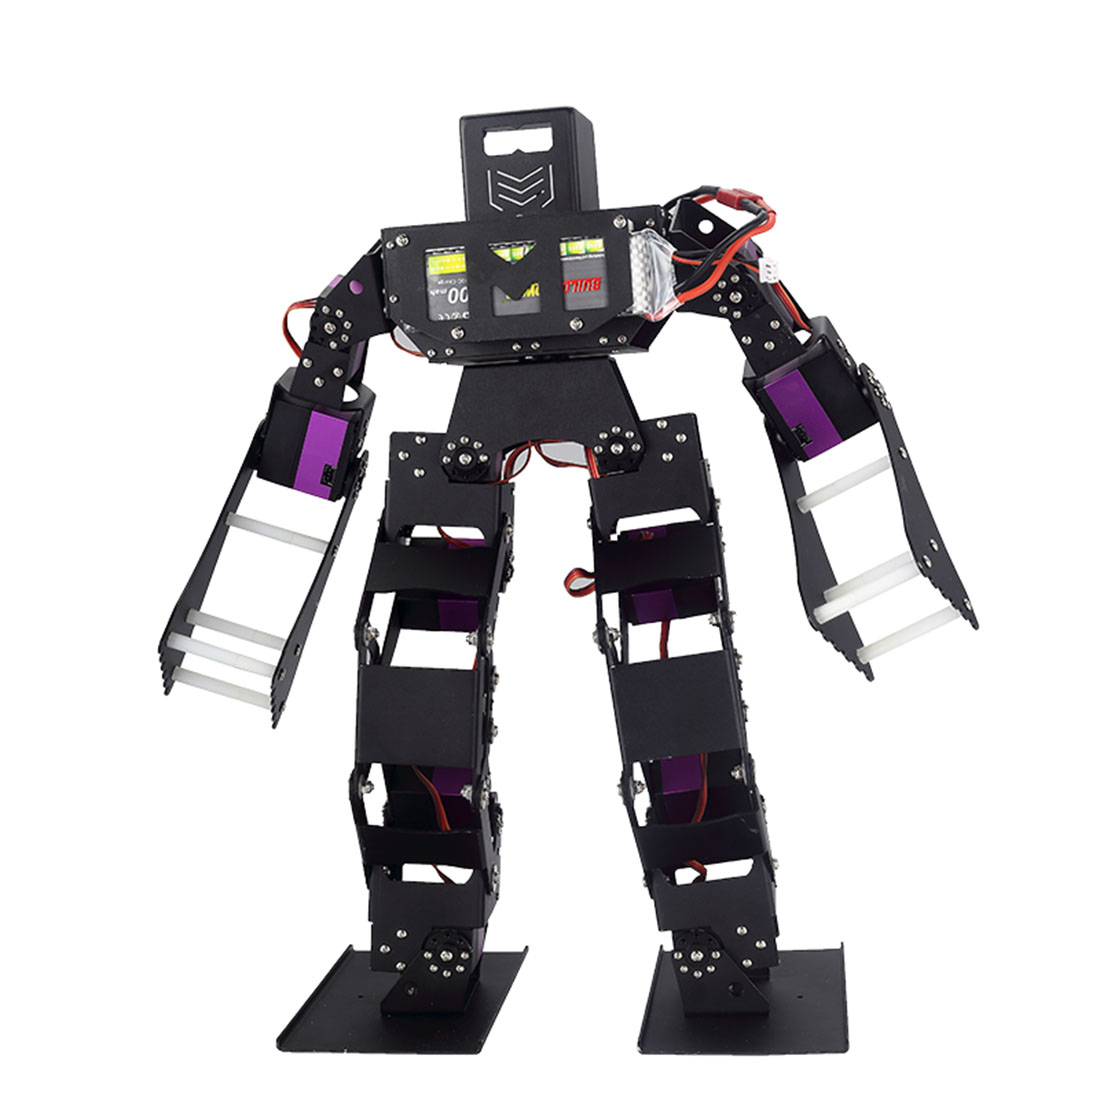 Programmable Biped Robot Boxing Competition Robot Toy DIY Stem Robot (Finished Product) Model Educational Toy Gift For Kid Adult